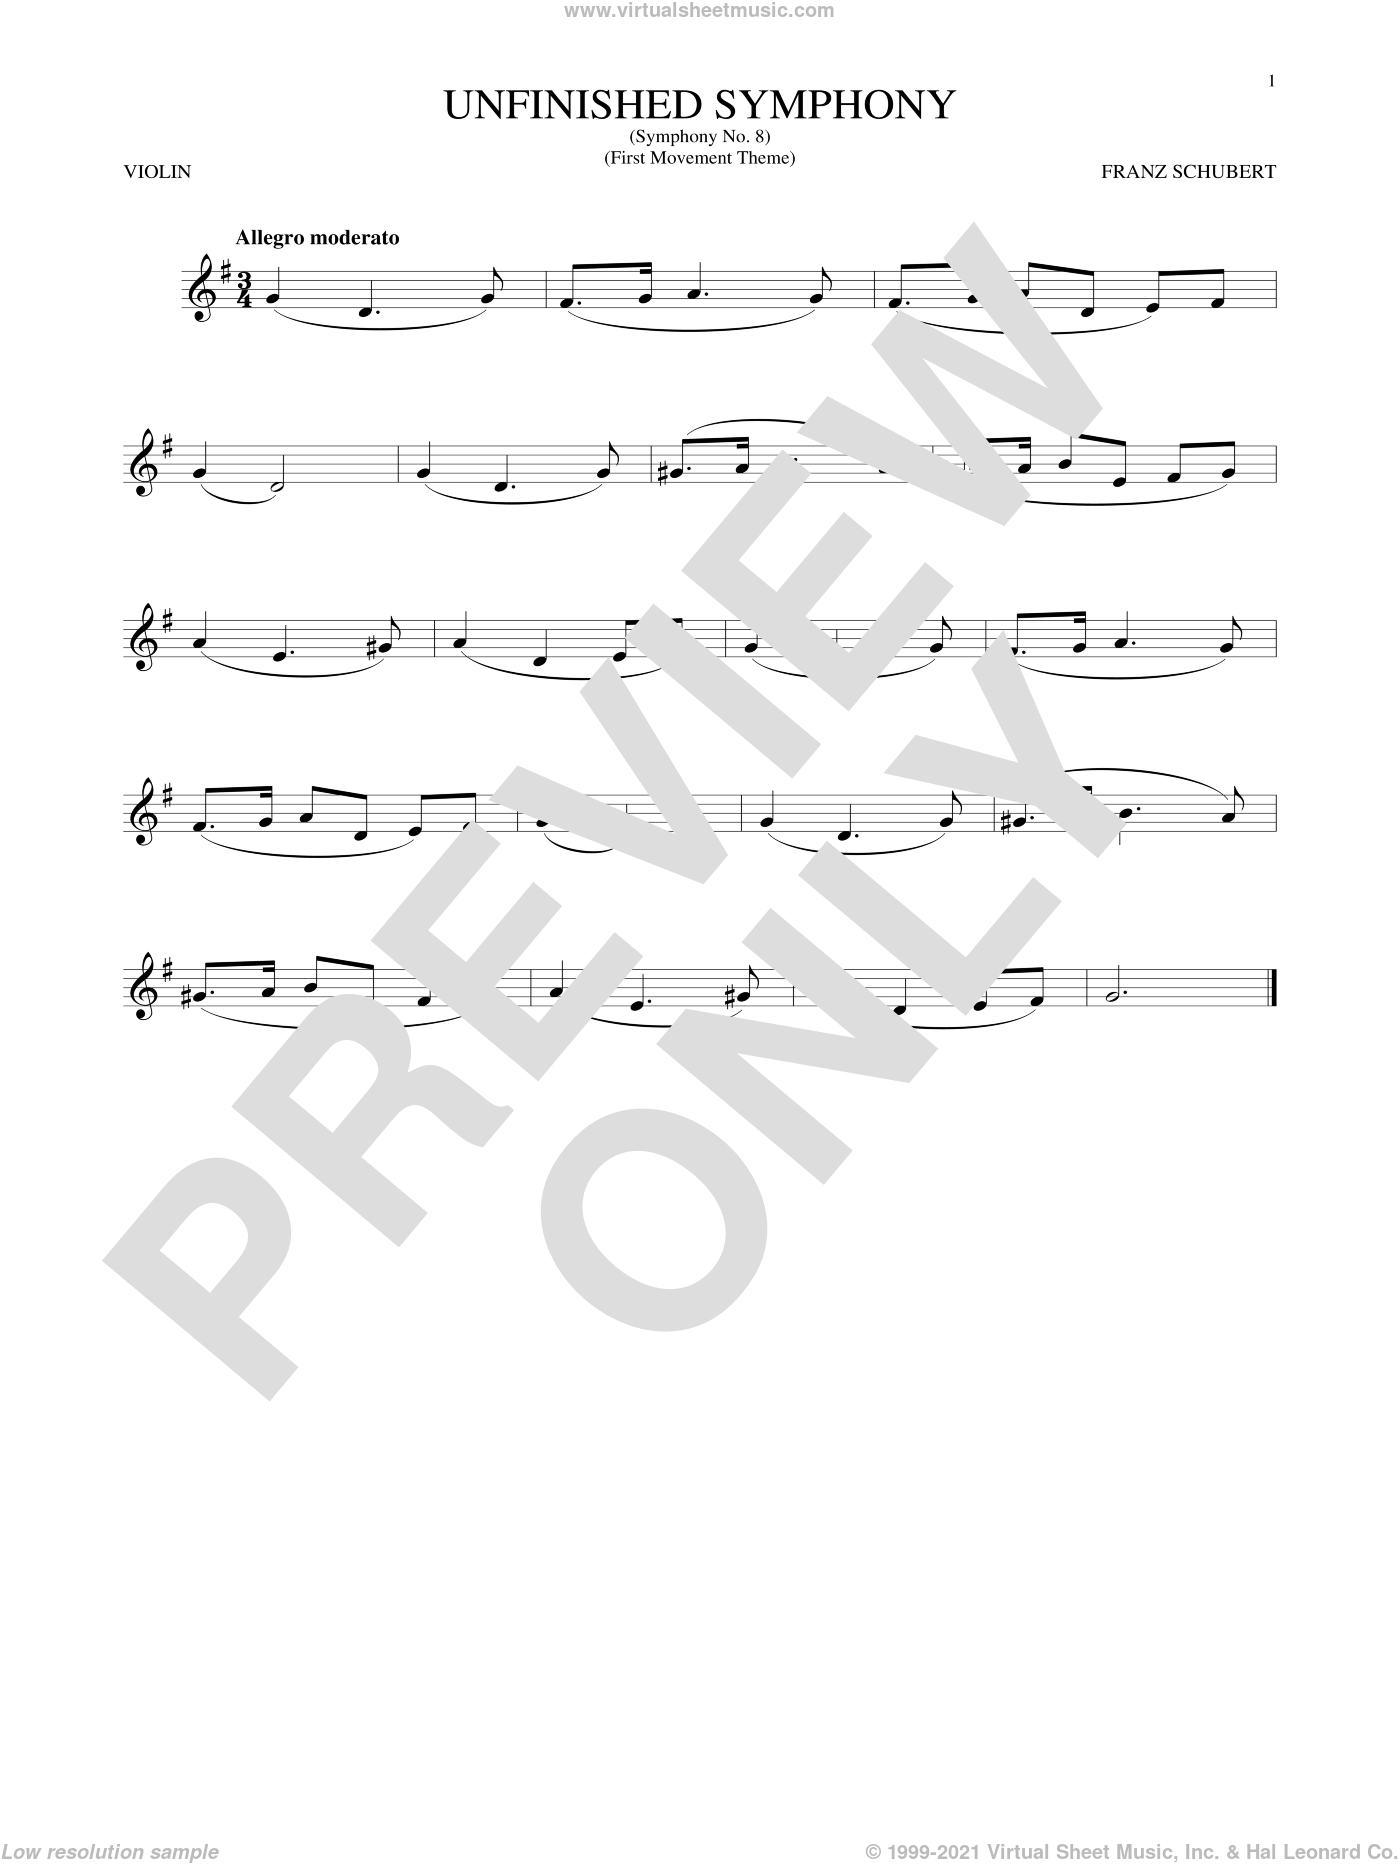 The Unfinished Symphony (Theme) sheet music for violin solo by Franz Schubert, classical score, intermediate skill level